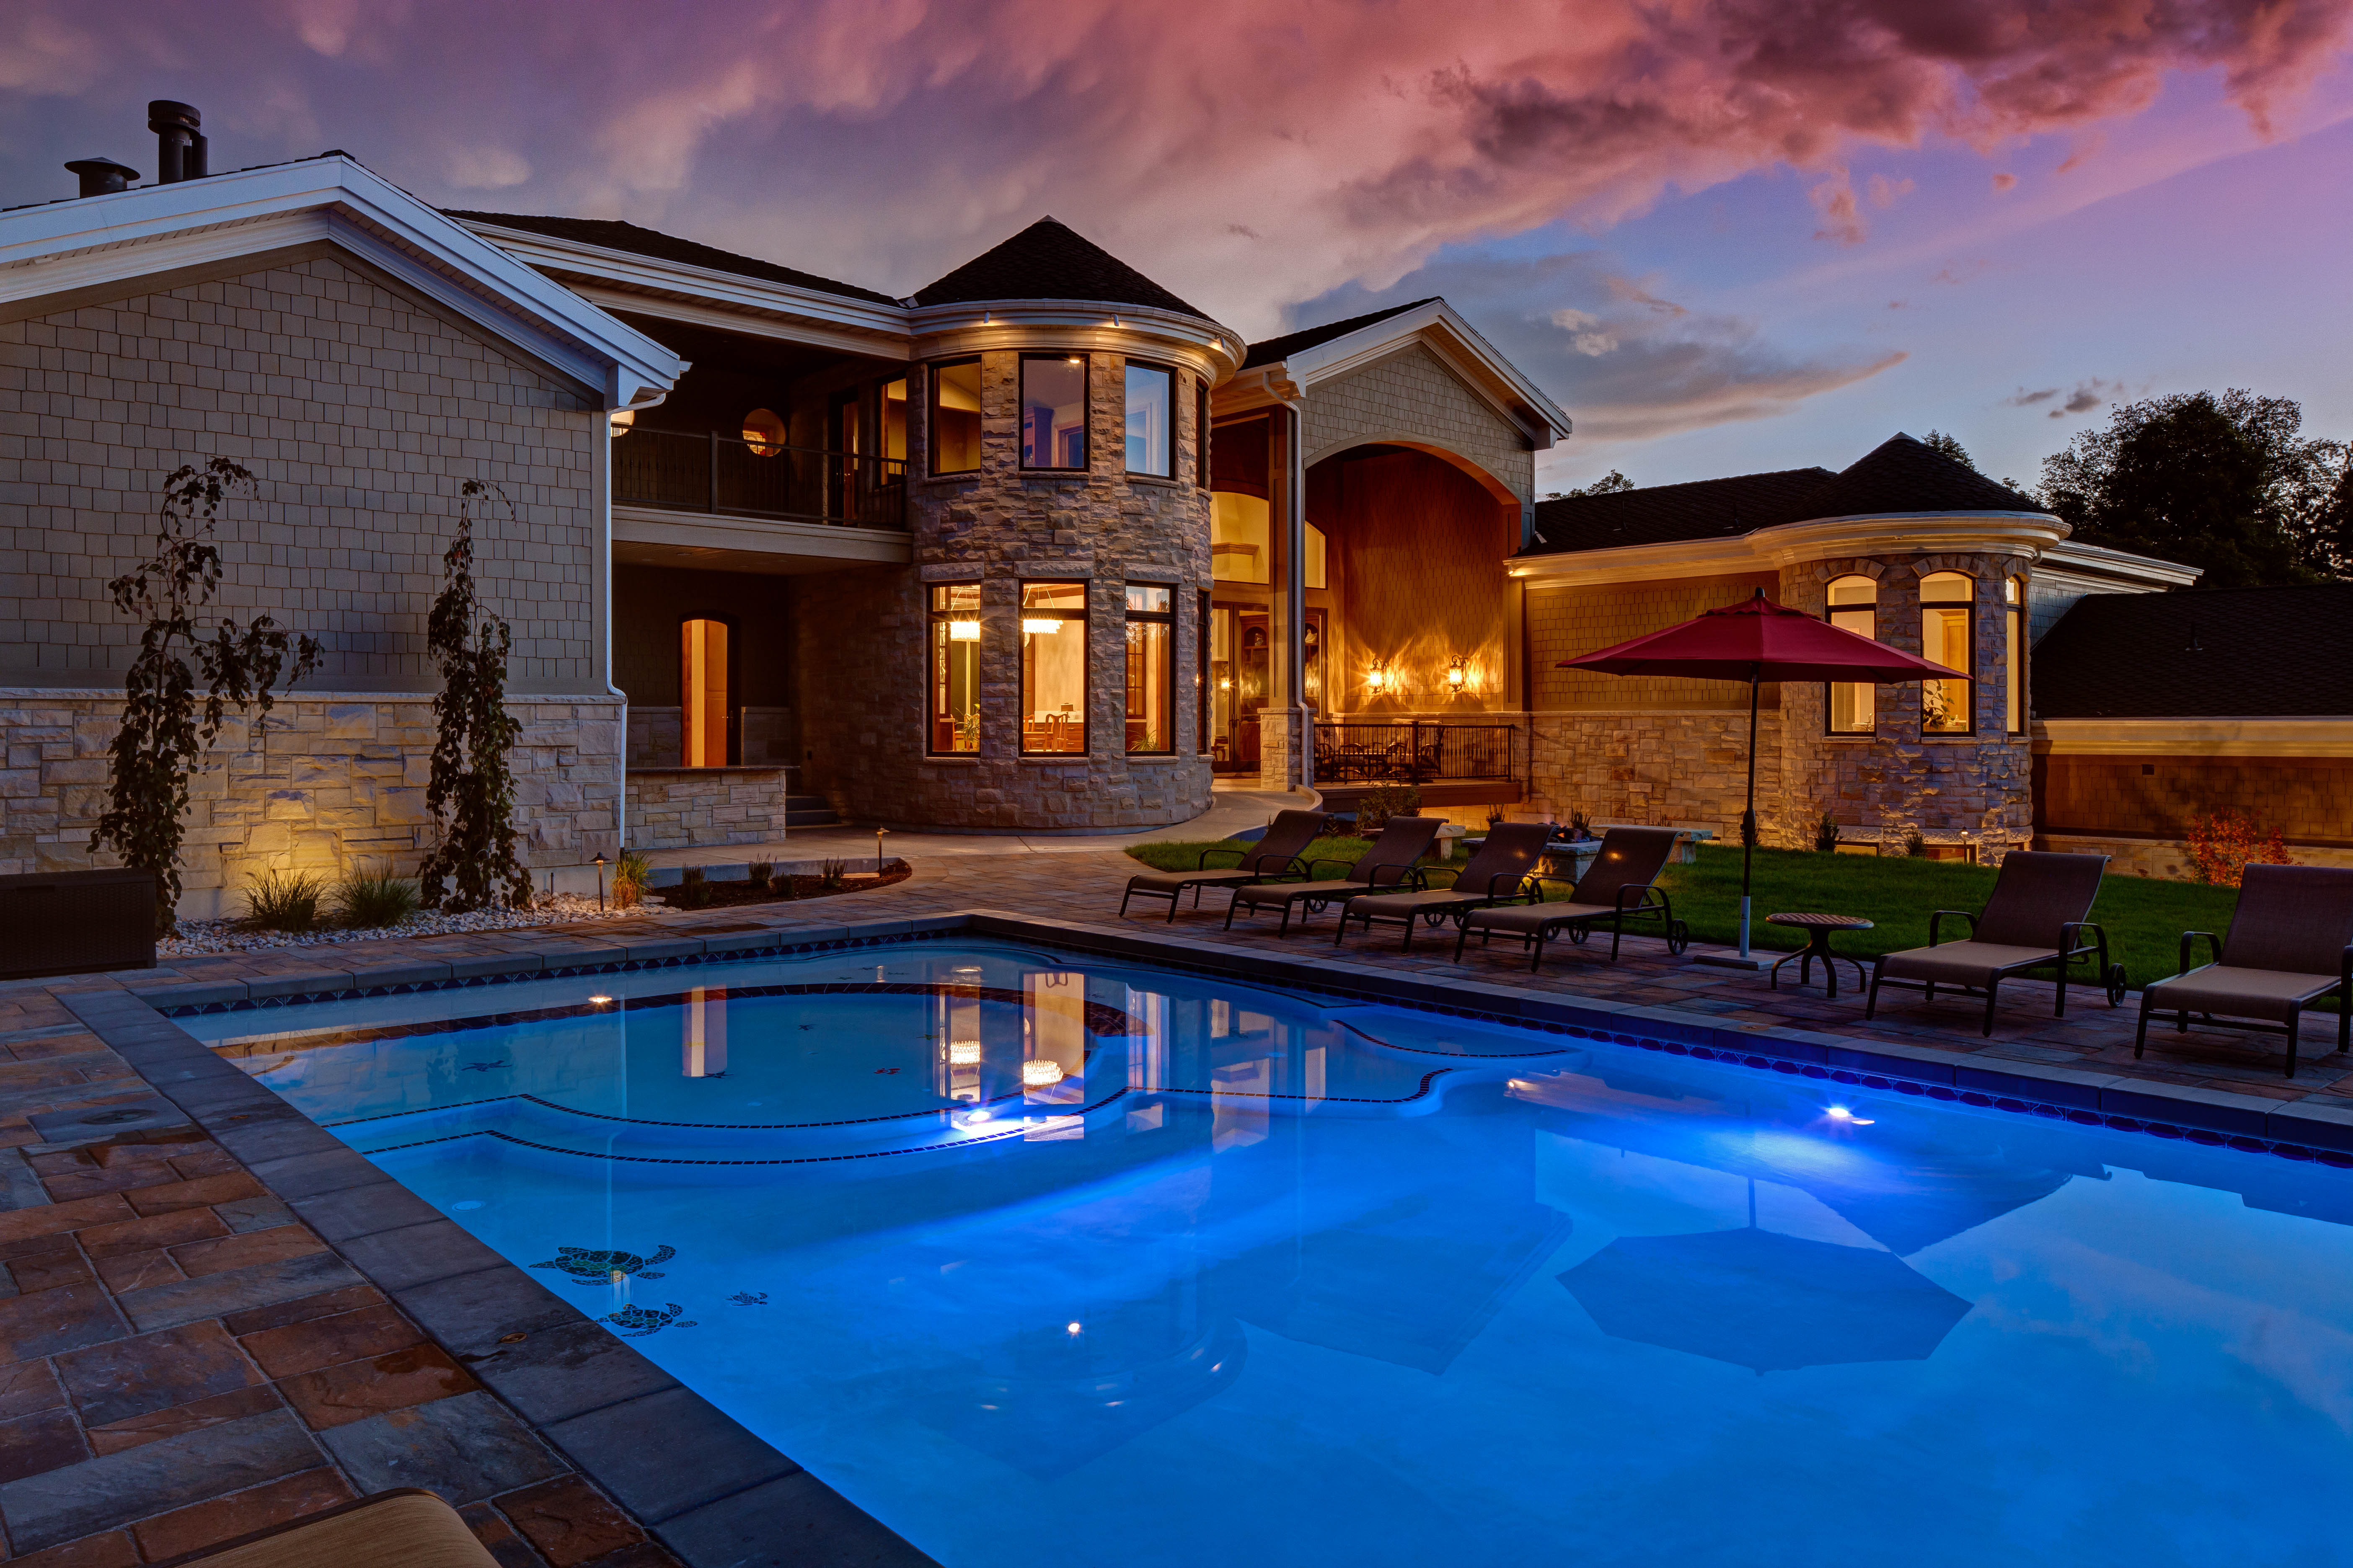 Landscape lighting for value beauty and security swimming pool lighting landscape outdoor lighting utah publicscrutiny Image collections